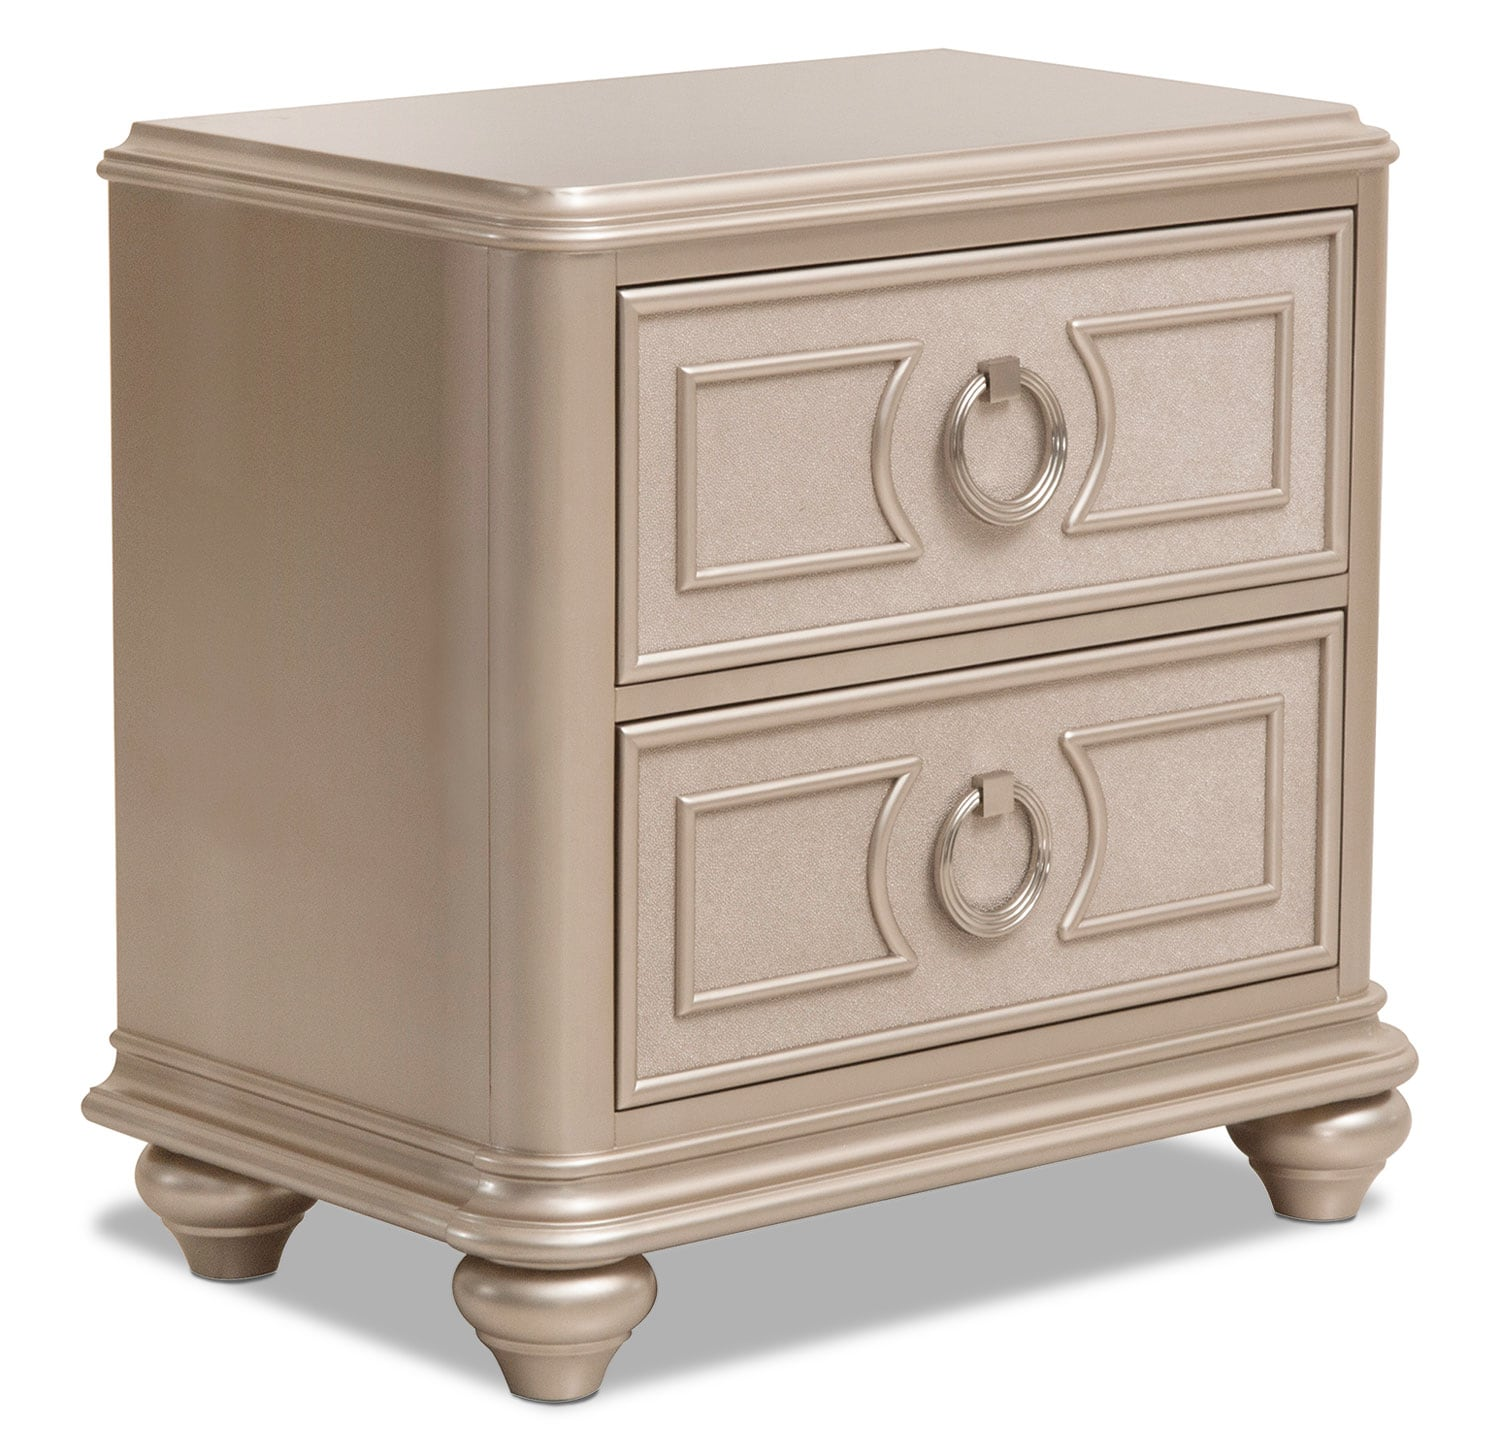 Bedroom Furniture - Dynasty Night Table - Gold